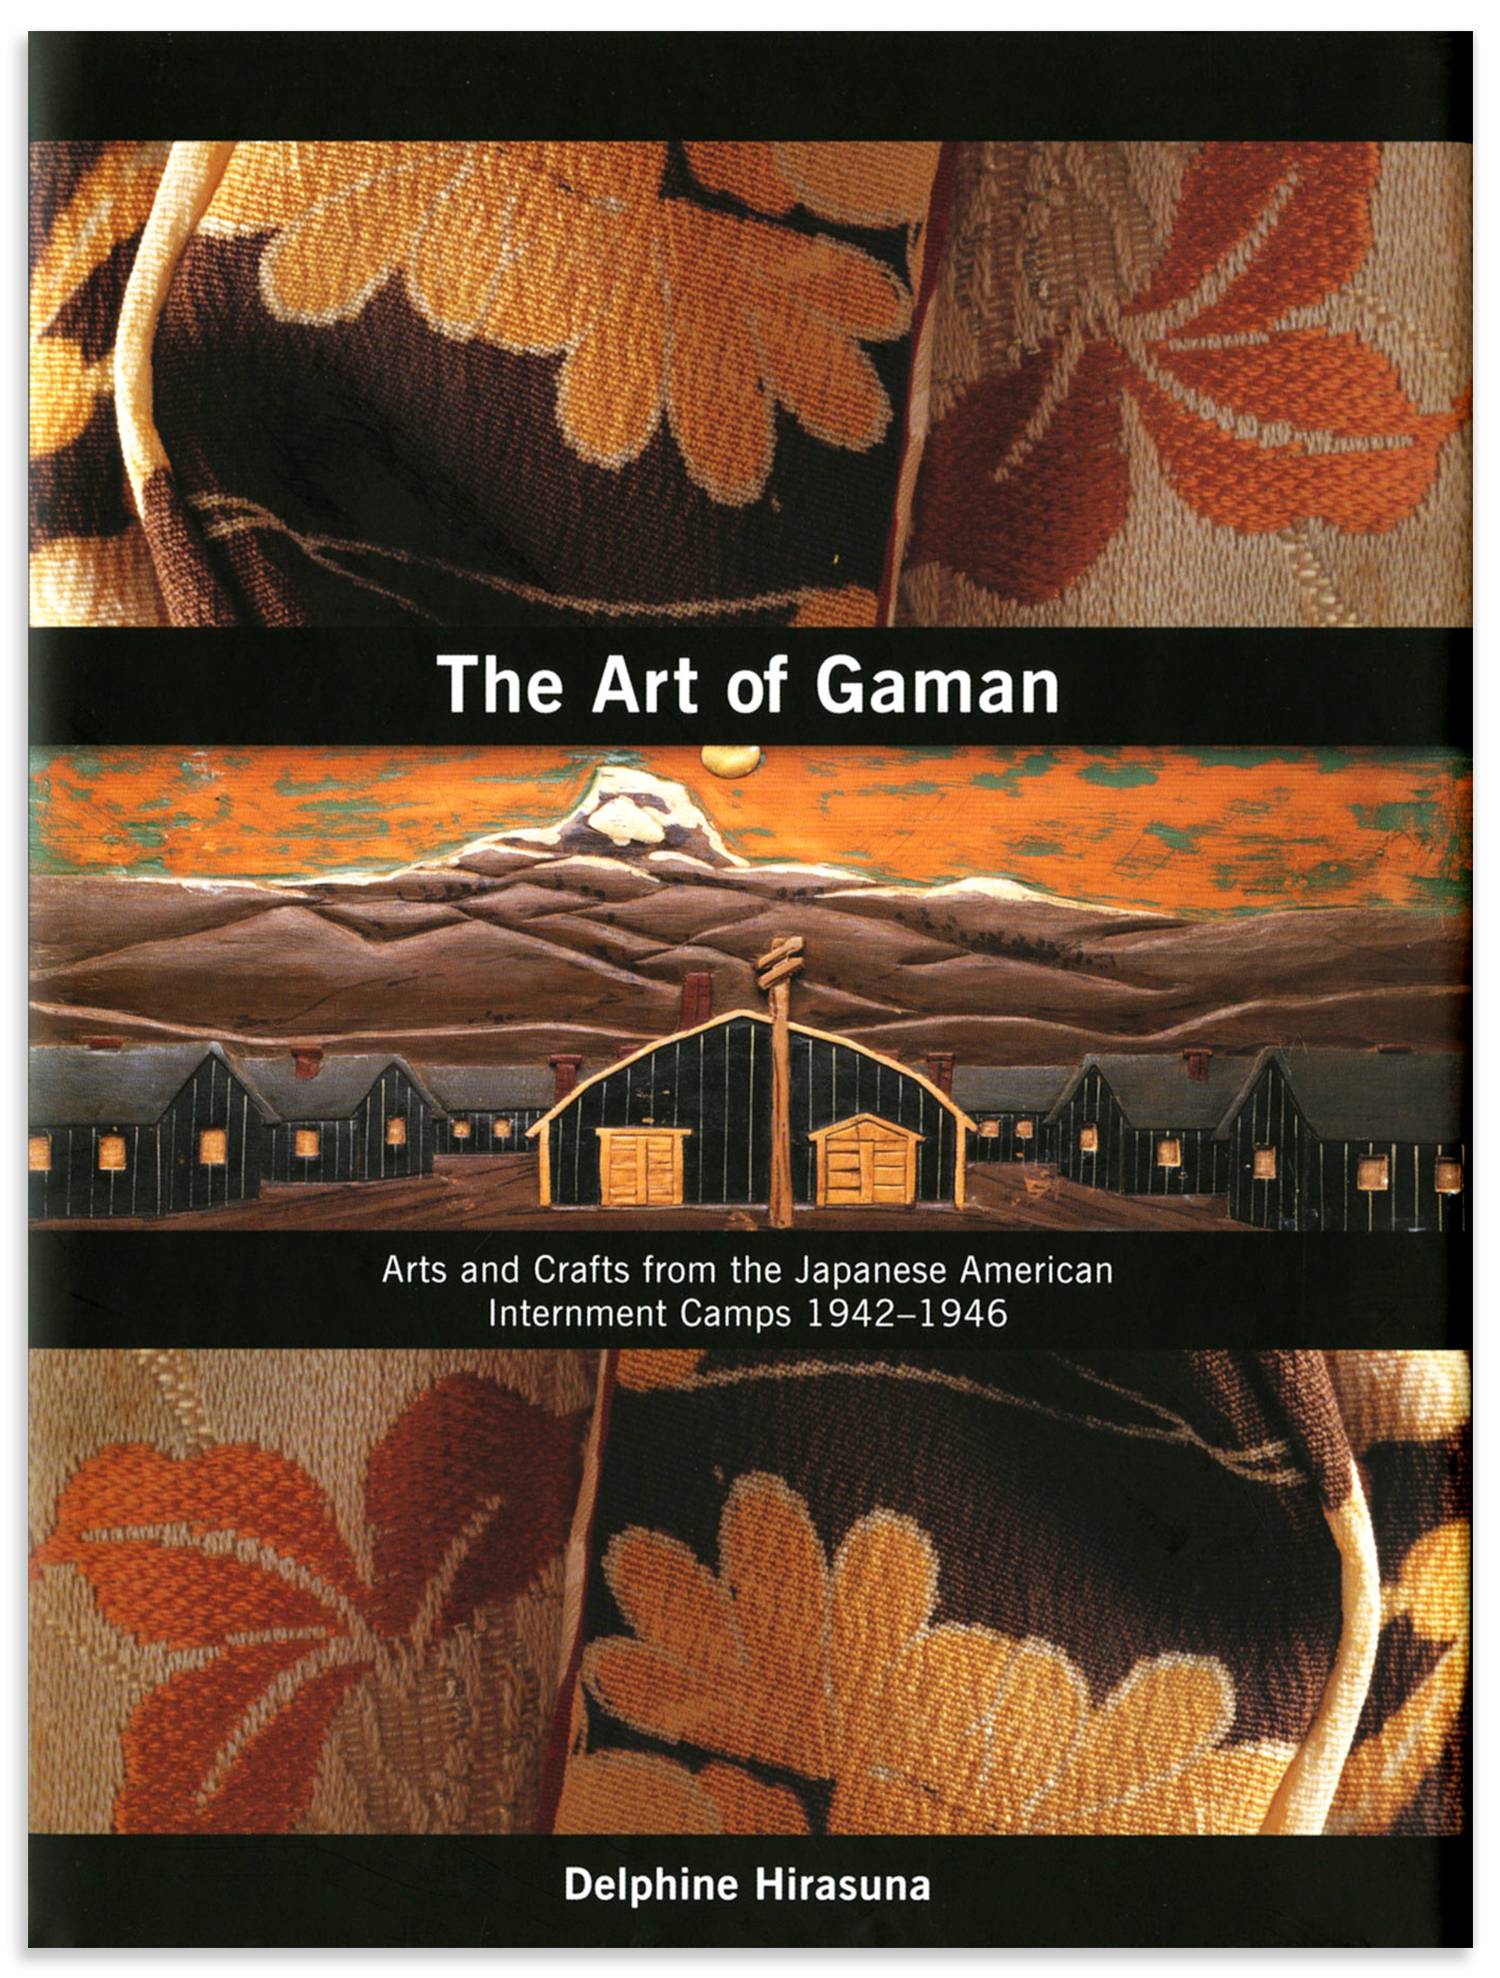 gaman_cover_1500px_shadow.jpg